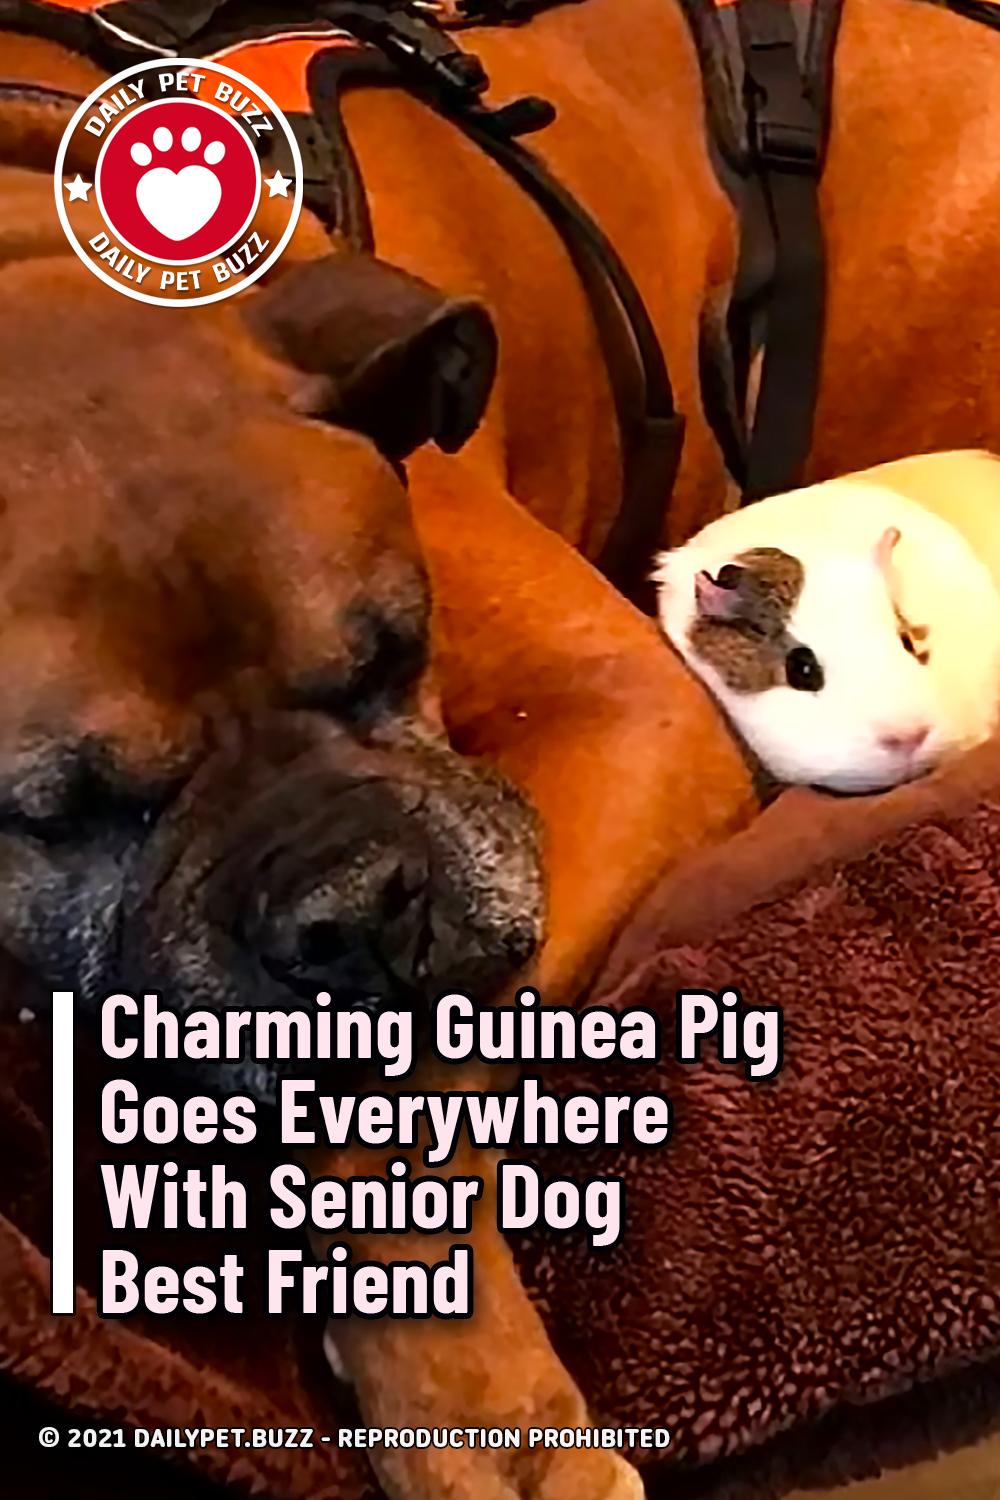 Charming Guinea Pig Goes Everywhere With Senior Dog Best Friend